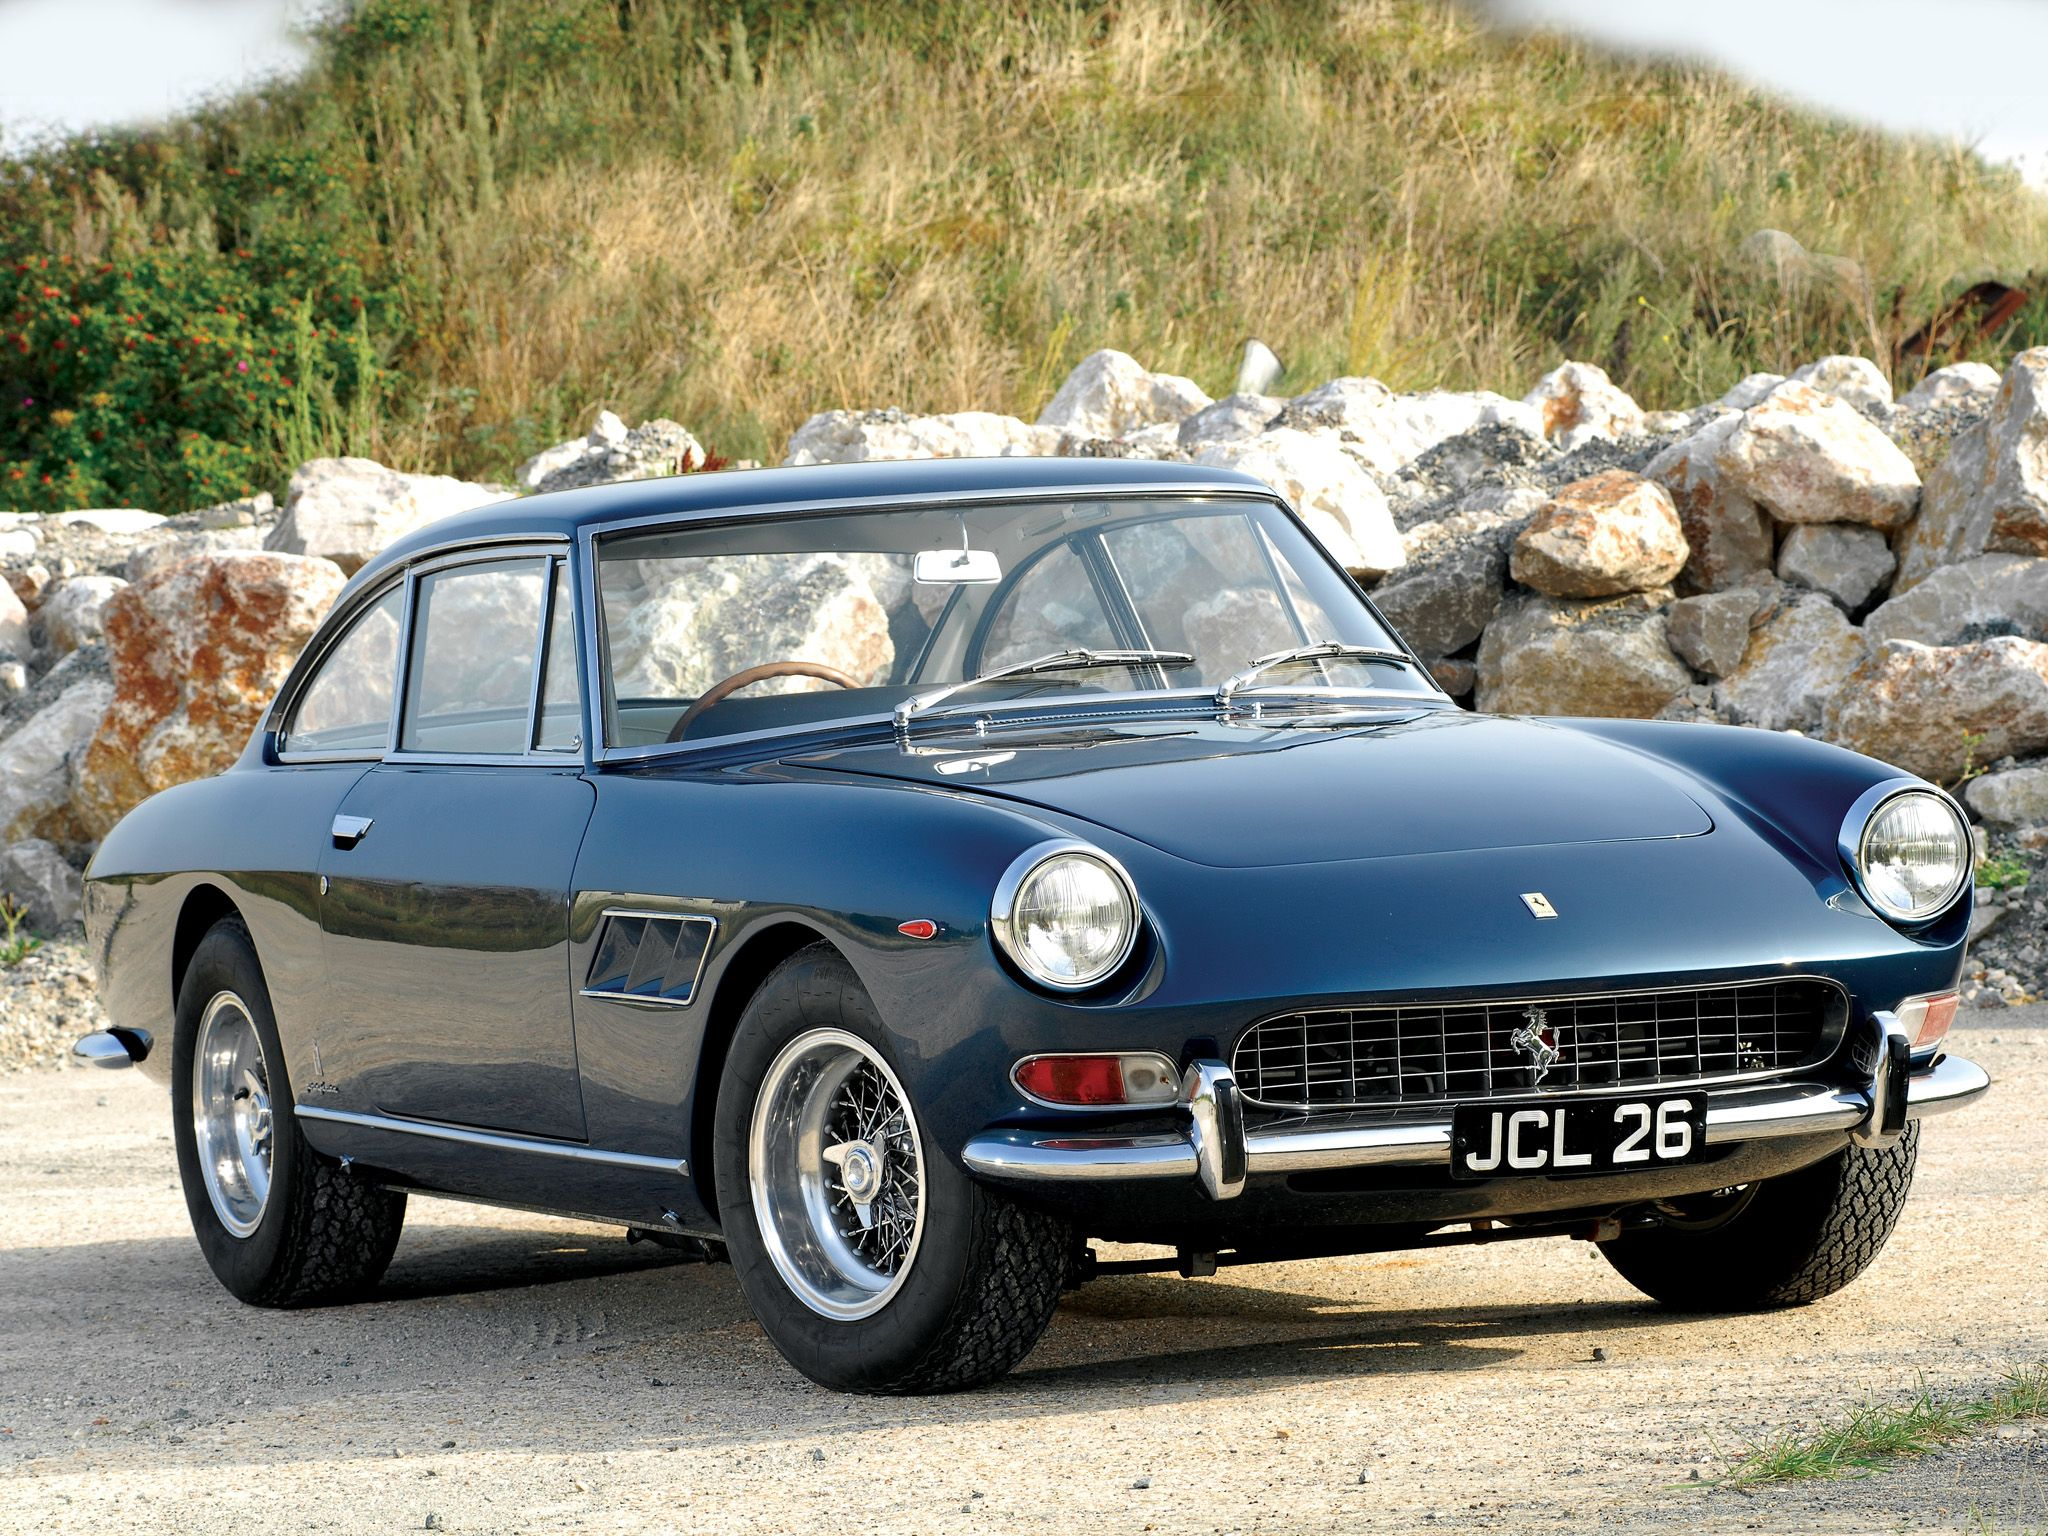 Ferrari 330 GT UK Spec (Series II) Maintenance Of Old Vehicles: The  Material For New Cogs/casters/gears/pads Could Be Cast Polyamide Which I  (Cast ...